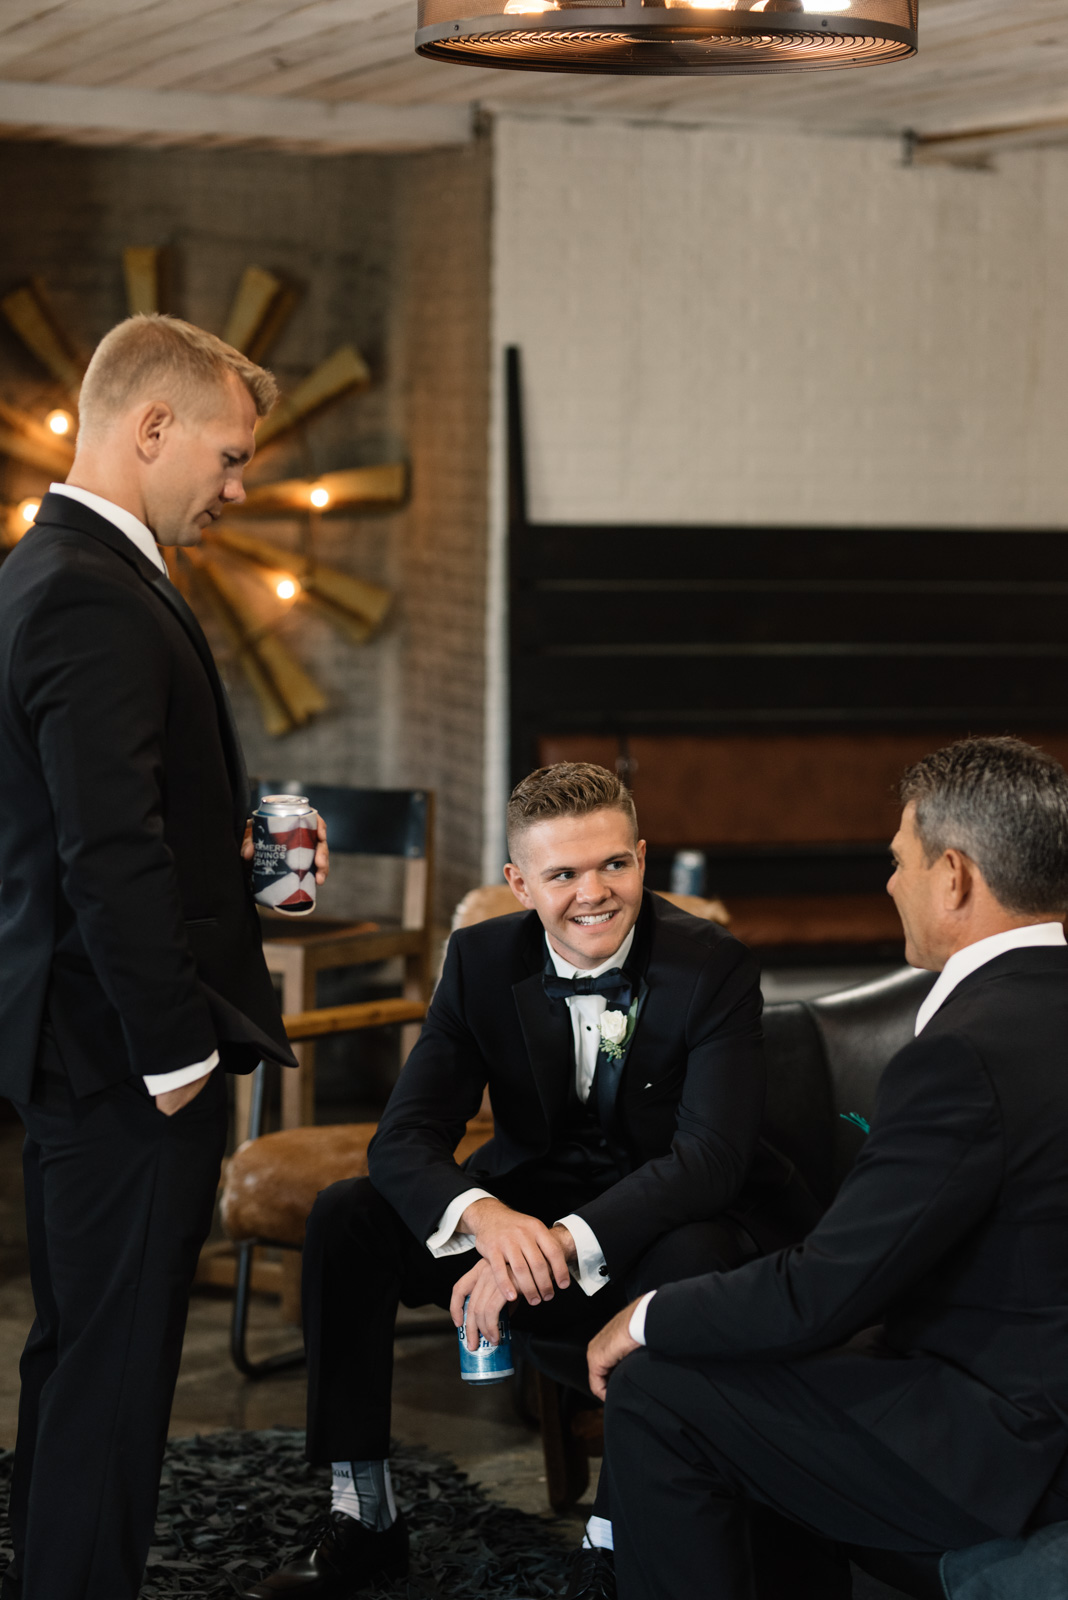 groom and best man helping father of the groom tie tie